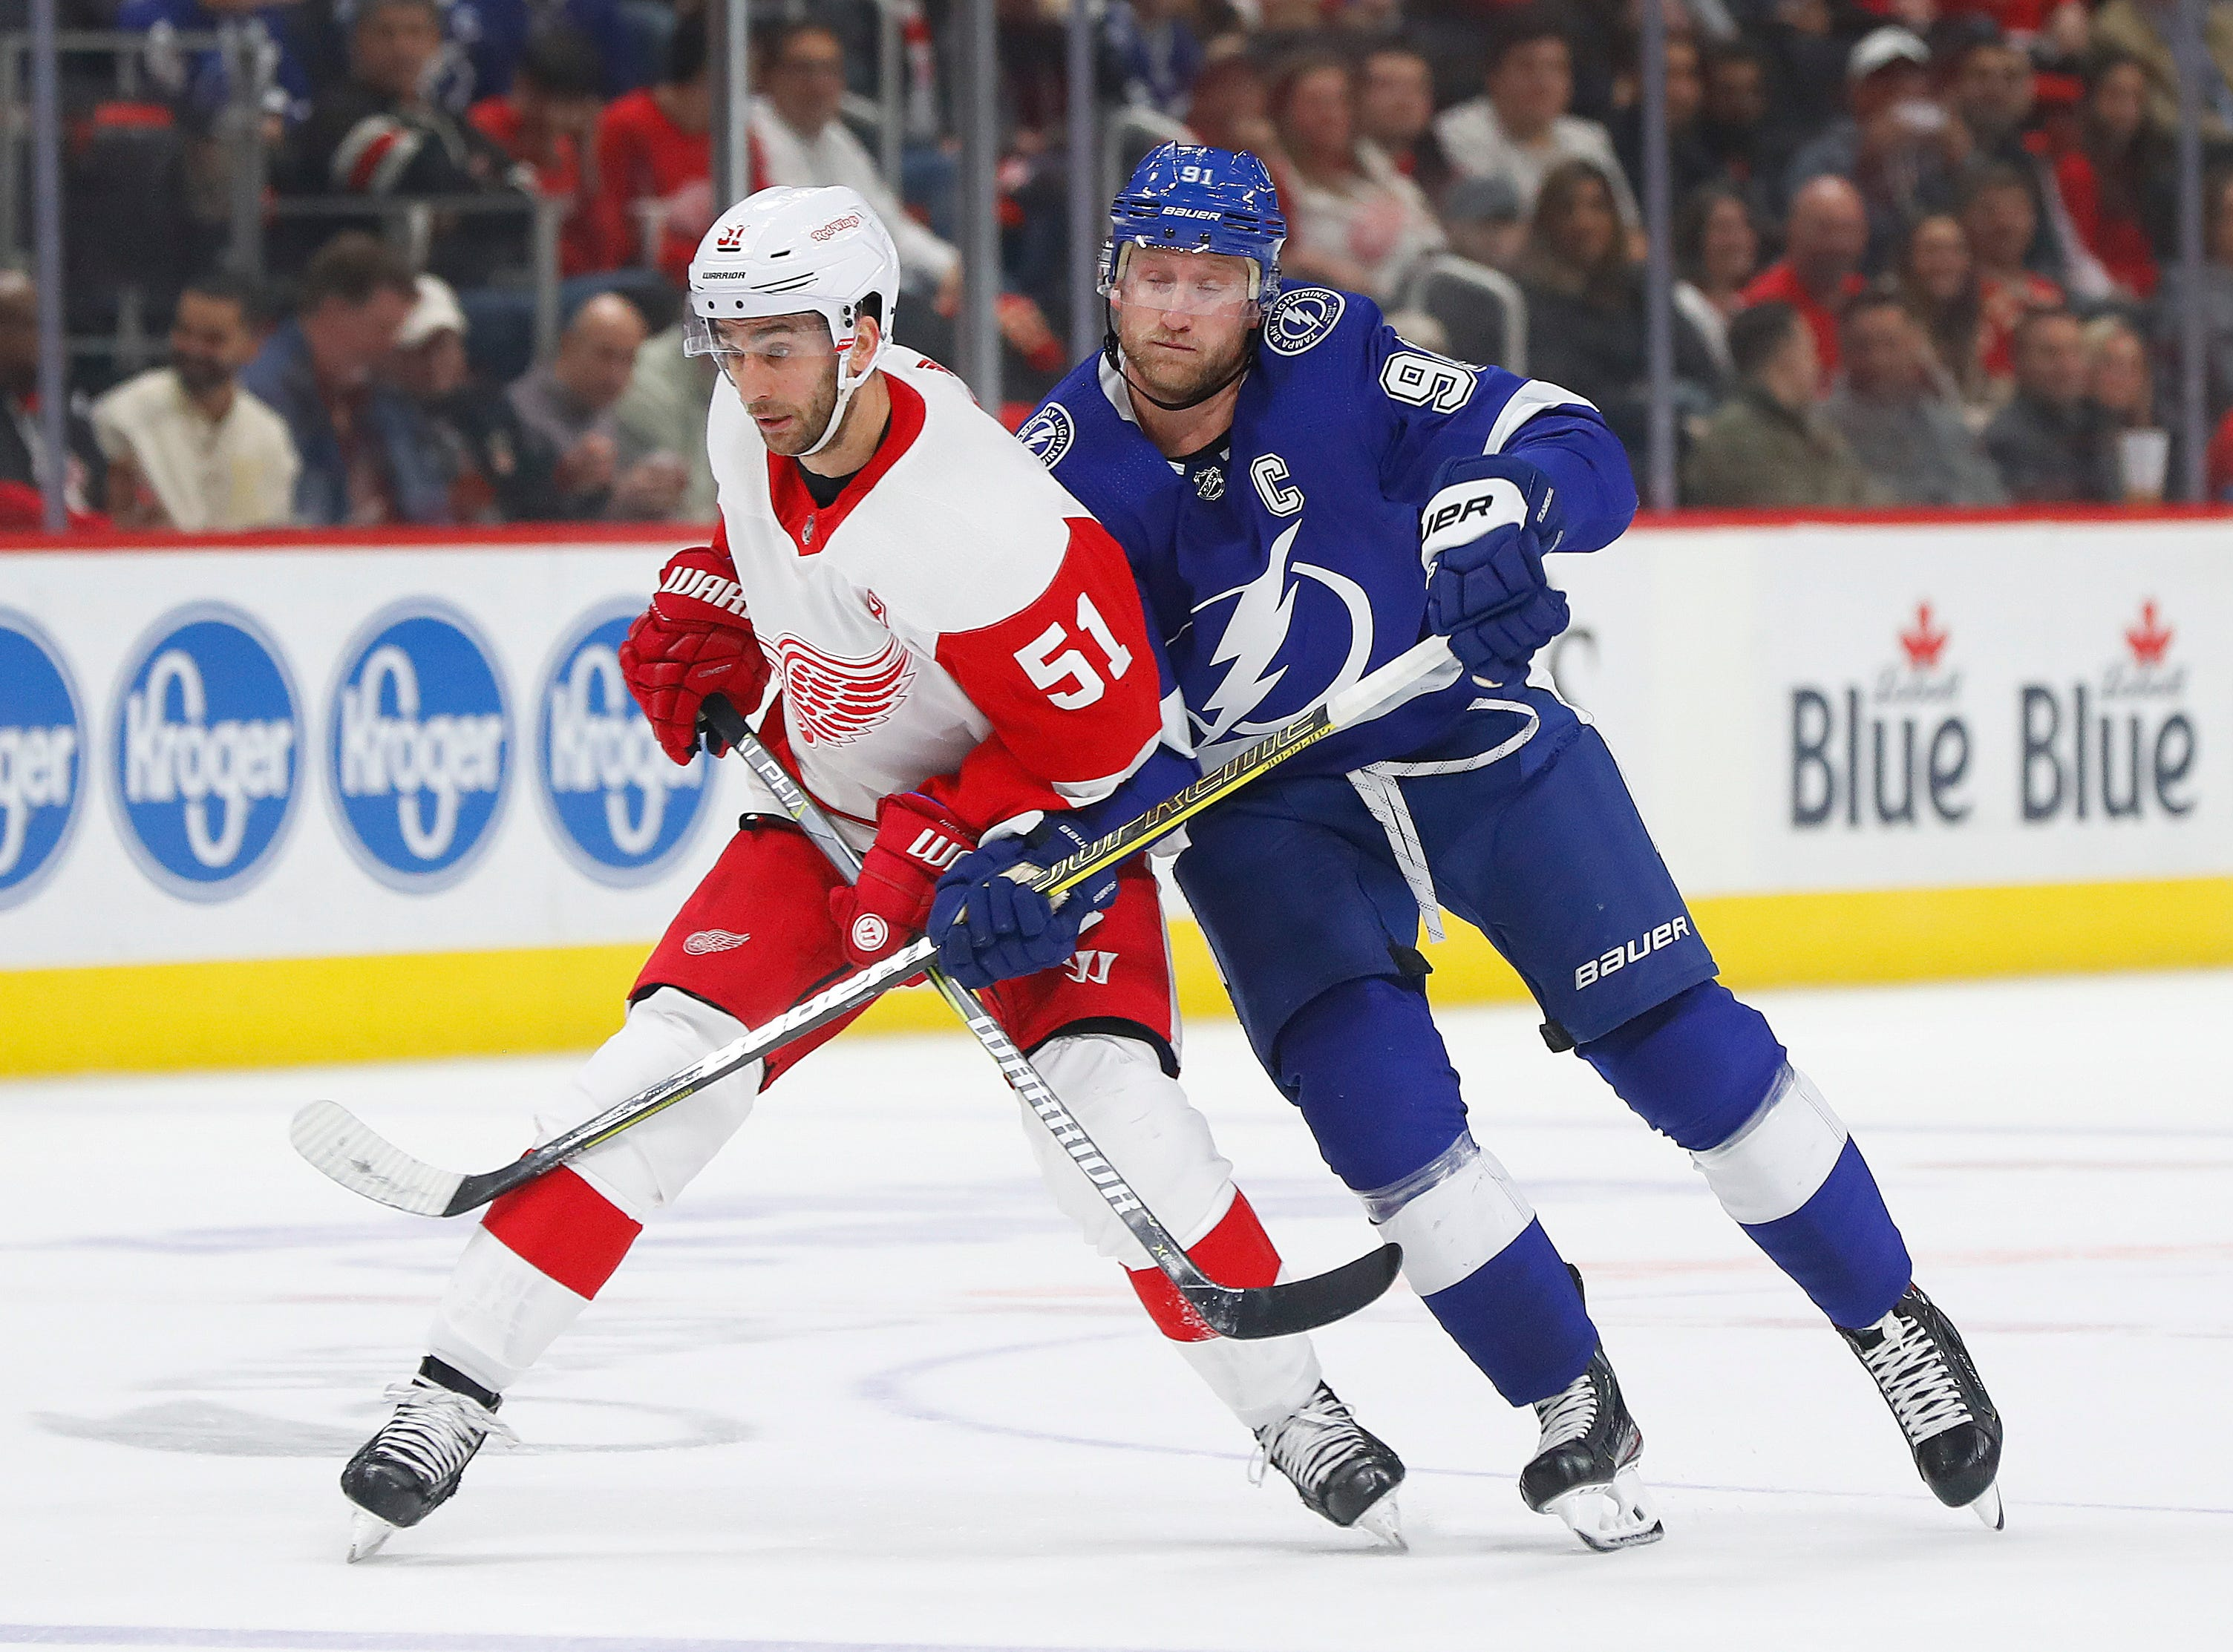 Detroit Red Wings center Frans Nielsen (51) and Tampa Bay Lightning center Steven Stamkos (91) battle for position in the first period.